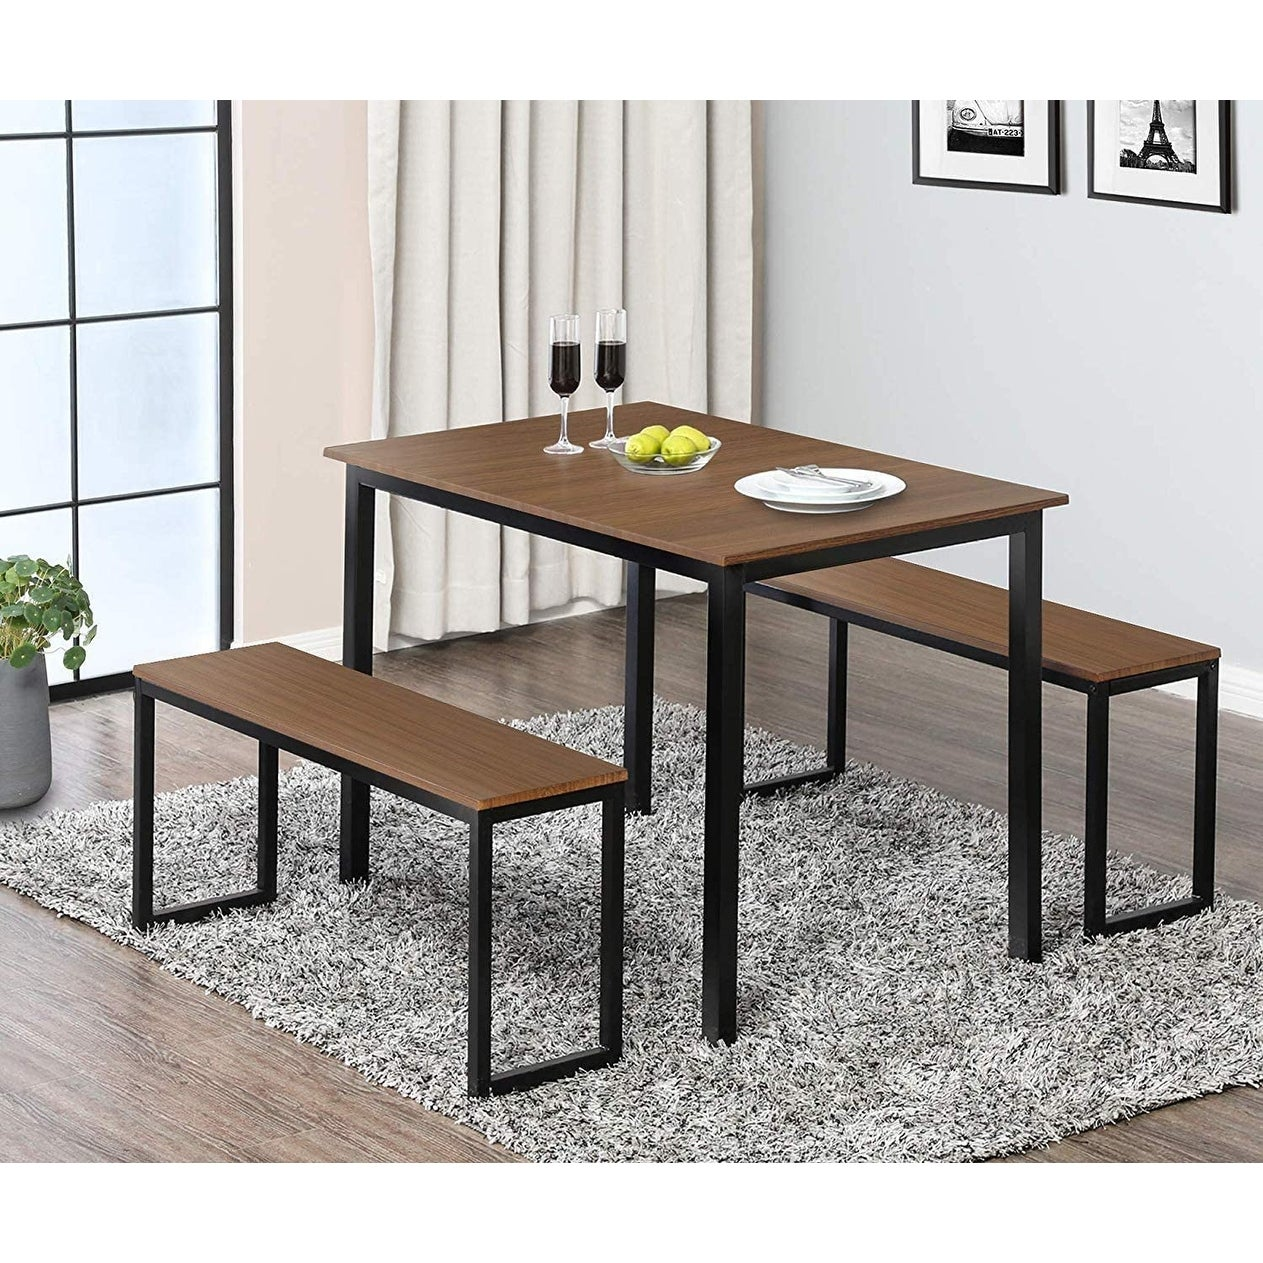 Home Treats Dining Table Set with Two Benches Wooden Finish Black Metal Frame 3 Piece Breakfast Table and Bench